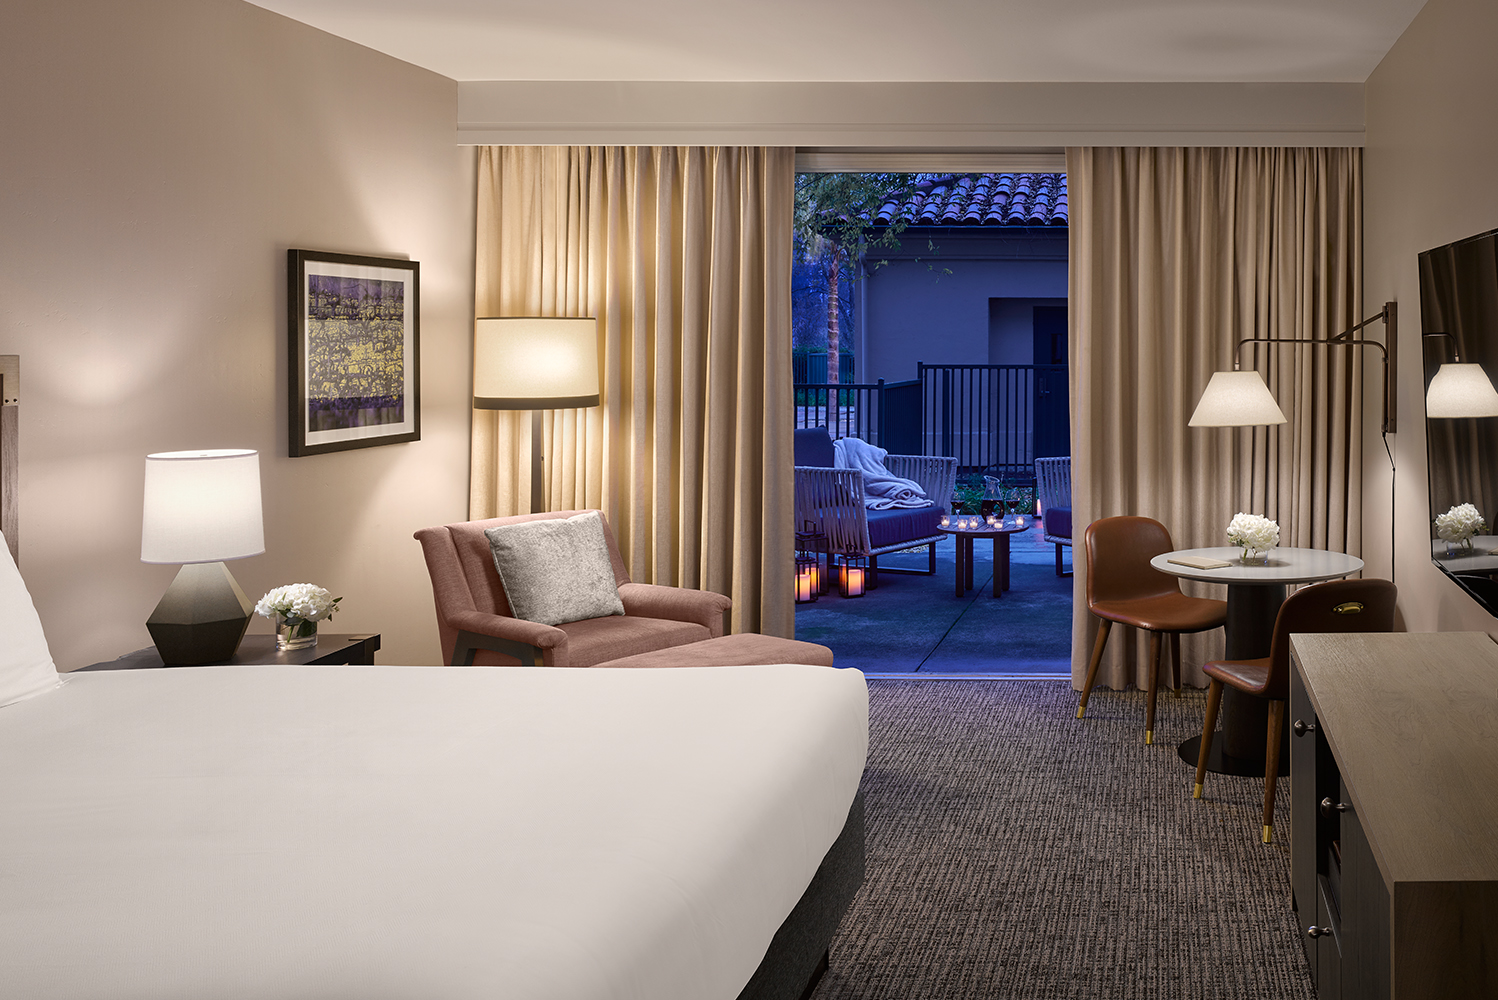 The suites use tones of olive, wheat and linen; while the guestrooms combine gold and cream colors intended to represent the autumn countryside.